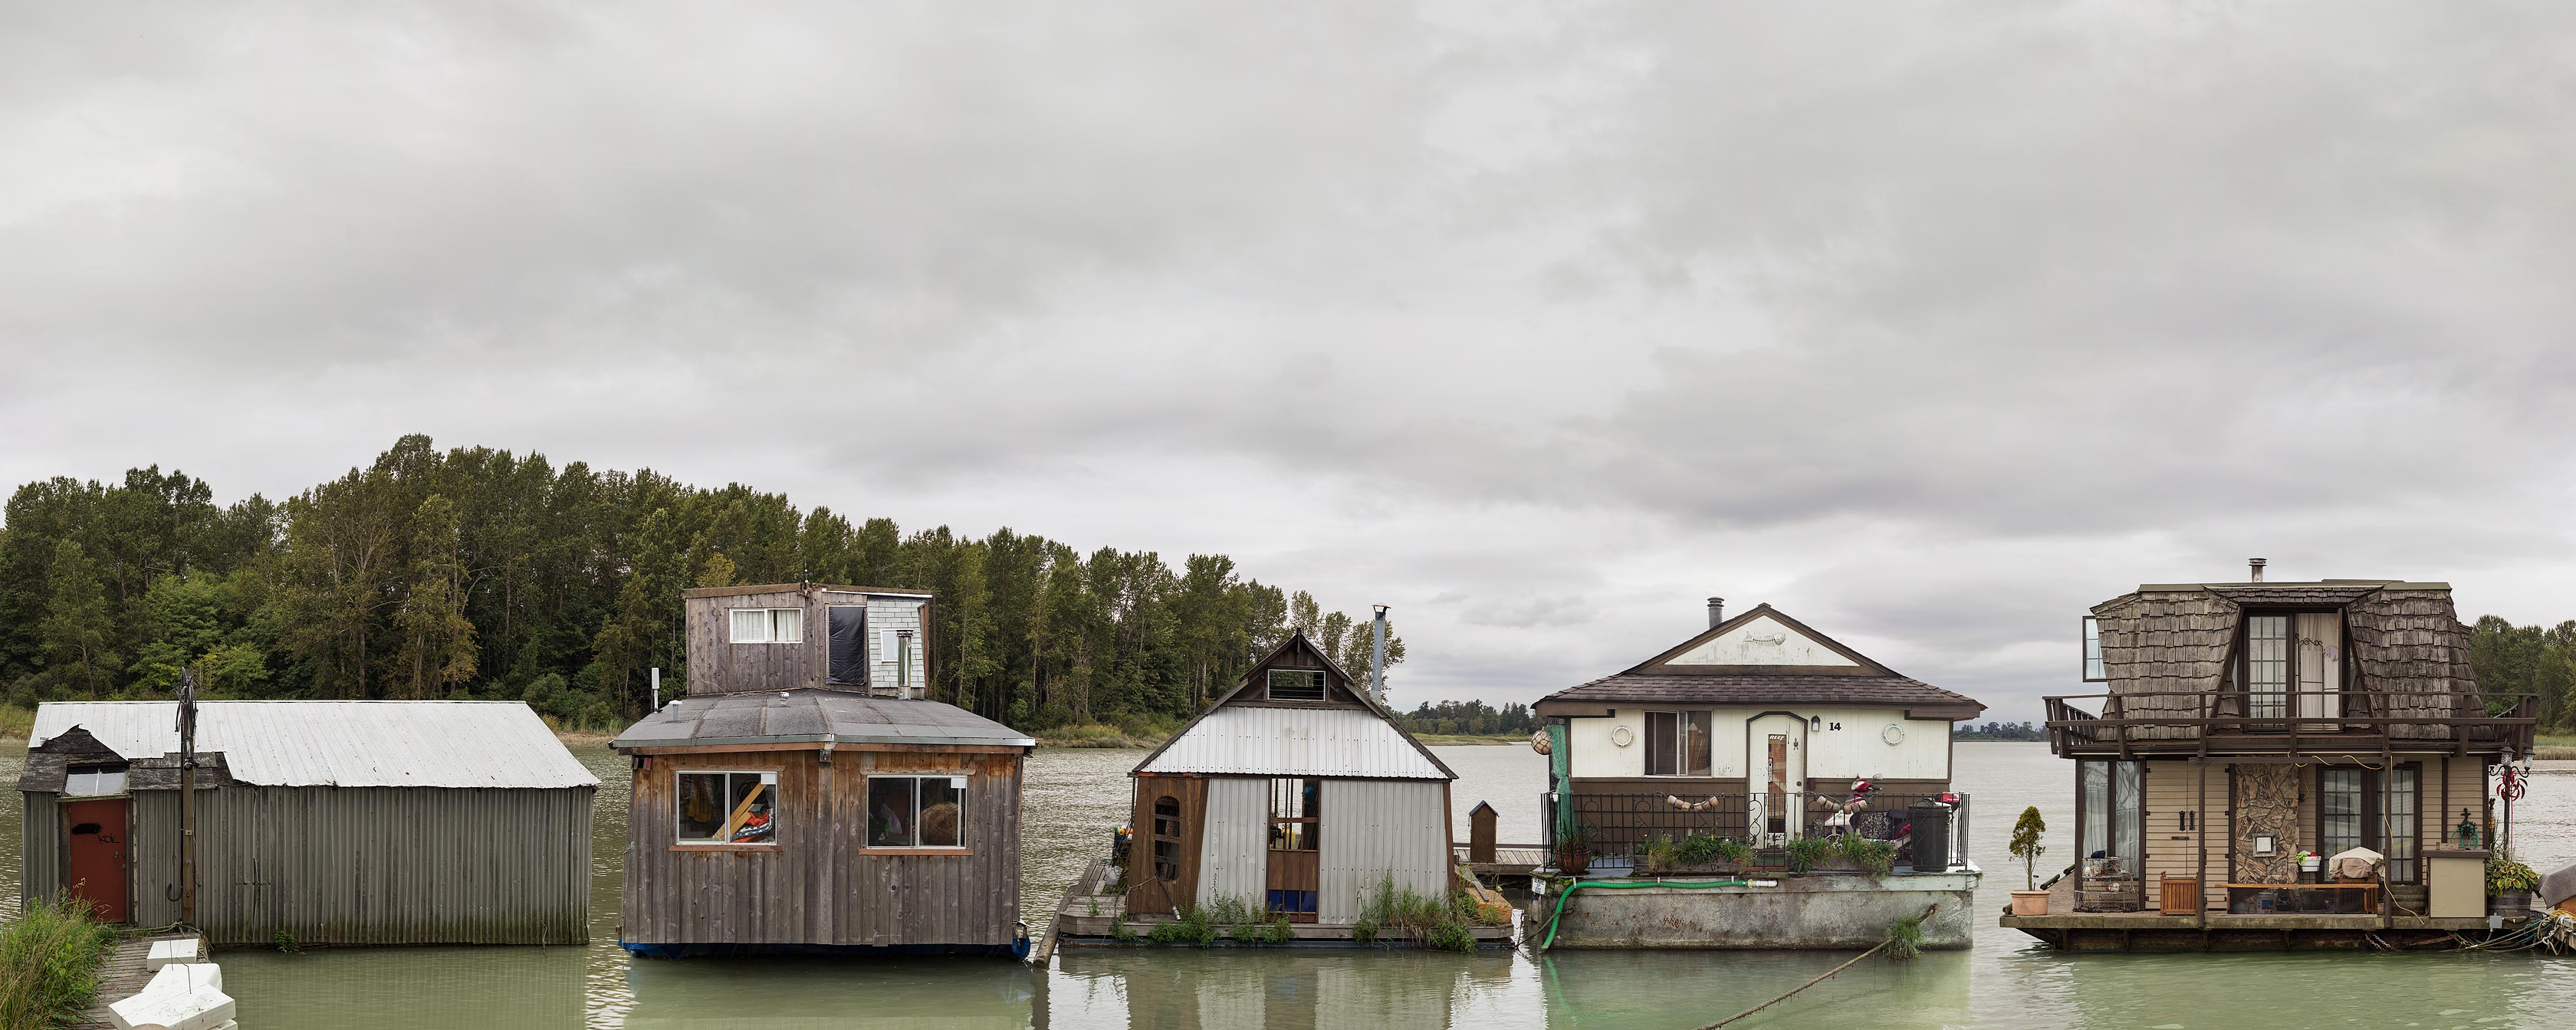 <p align=center><em>Floating Homes</em> <br />30″ x 75″, archival print backmounted to aluminum, edition of 5<br /> 18″ x 45″, archival print backmounted to aluminum, edition of 7</p>